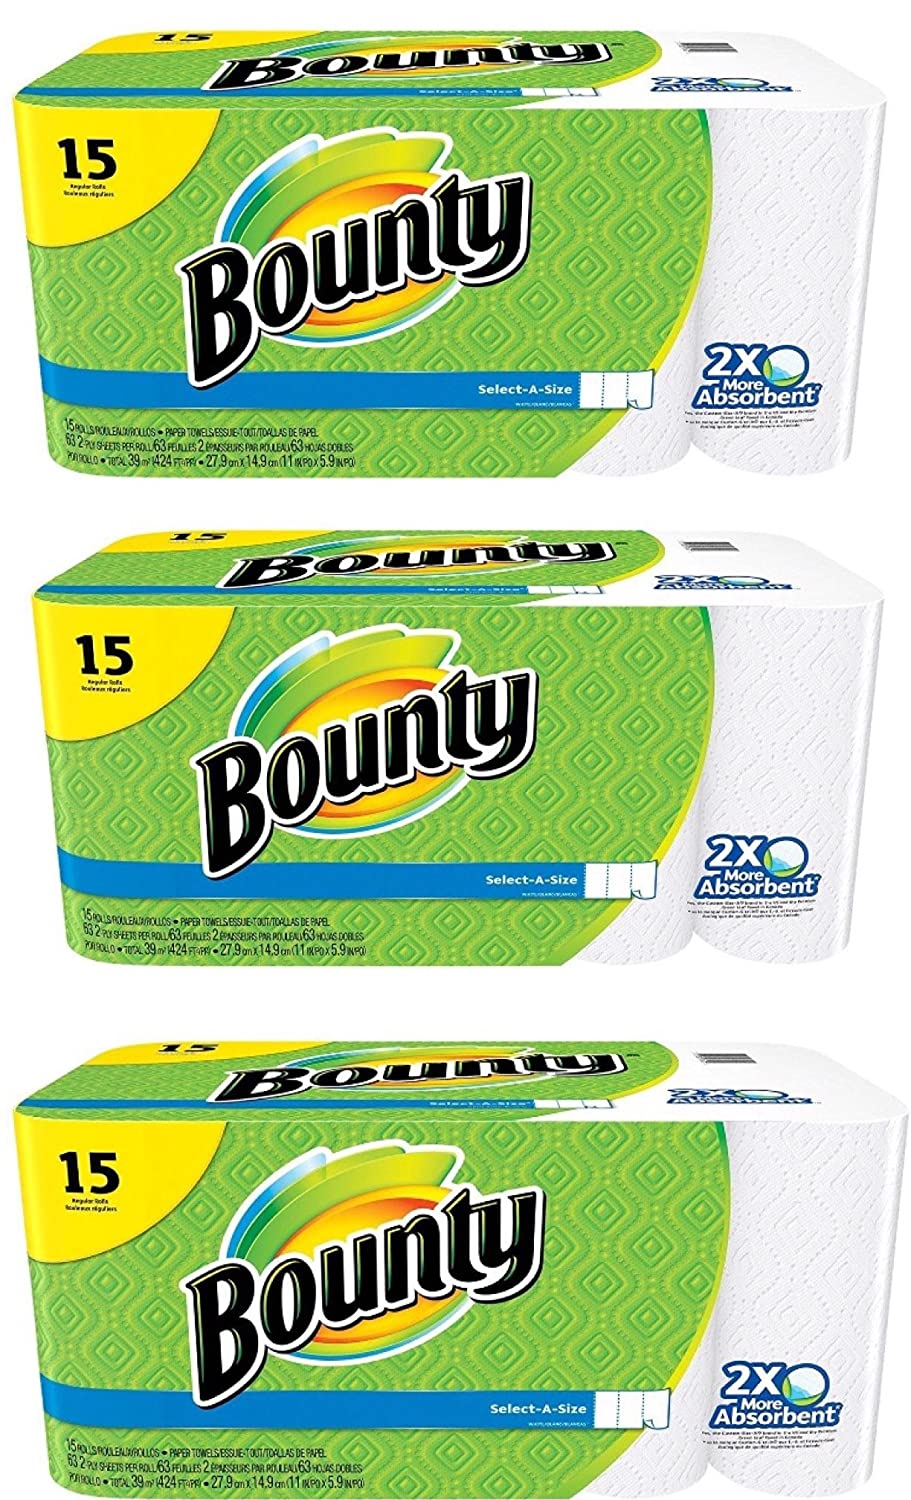 Amazon.com: Bounty Select-a-size Paper Towels, White, 15 Regular Rolls, Pack of 3: Kitchen & Dining